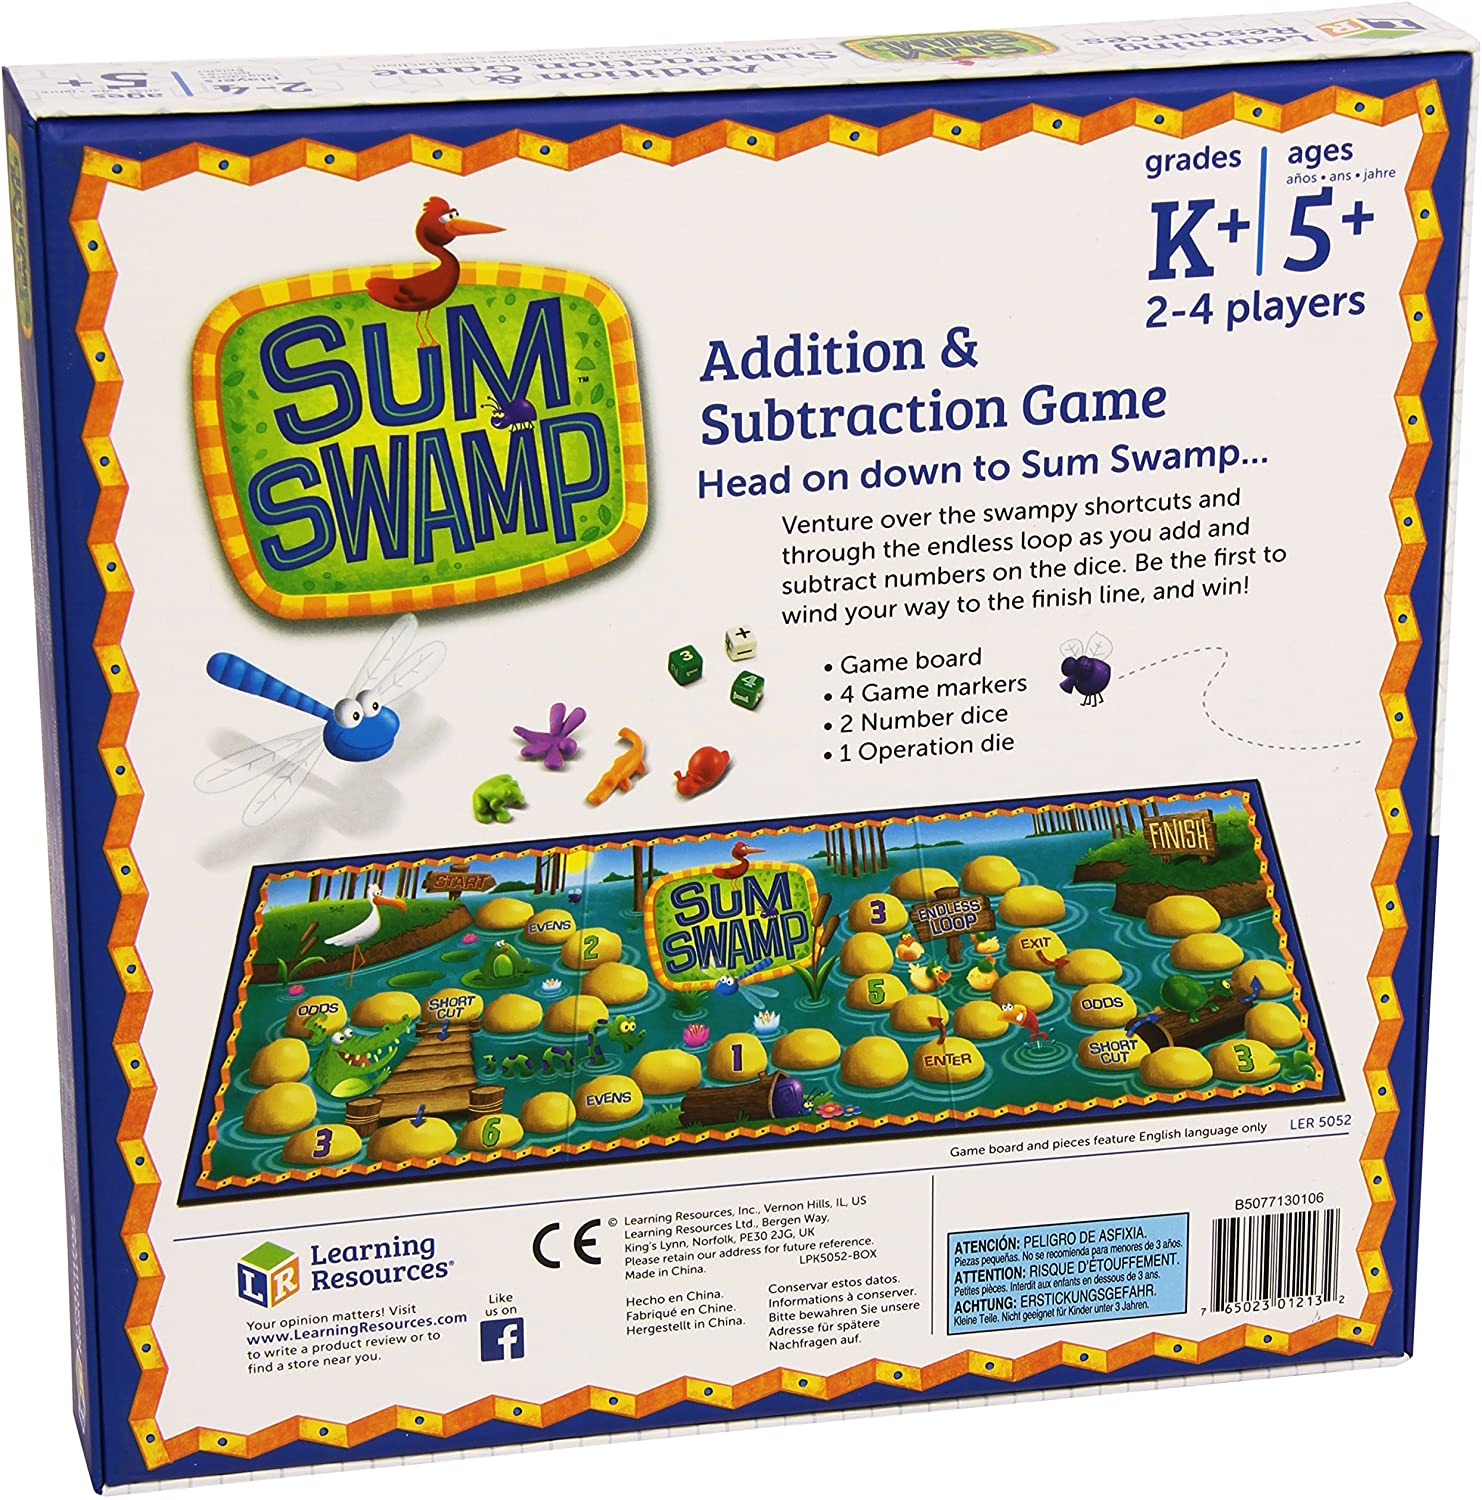 Learning Resources Sum Swamp Addition and Subtraction Game